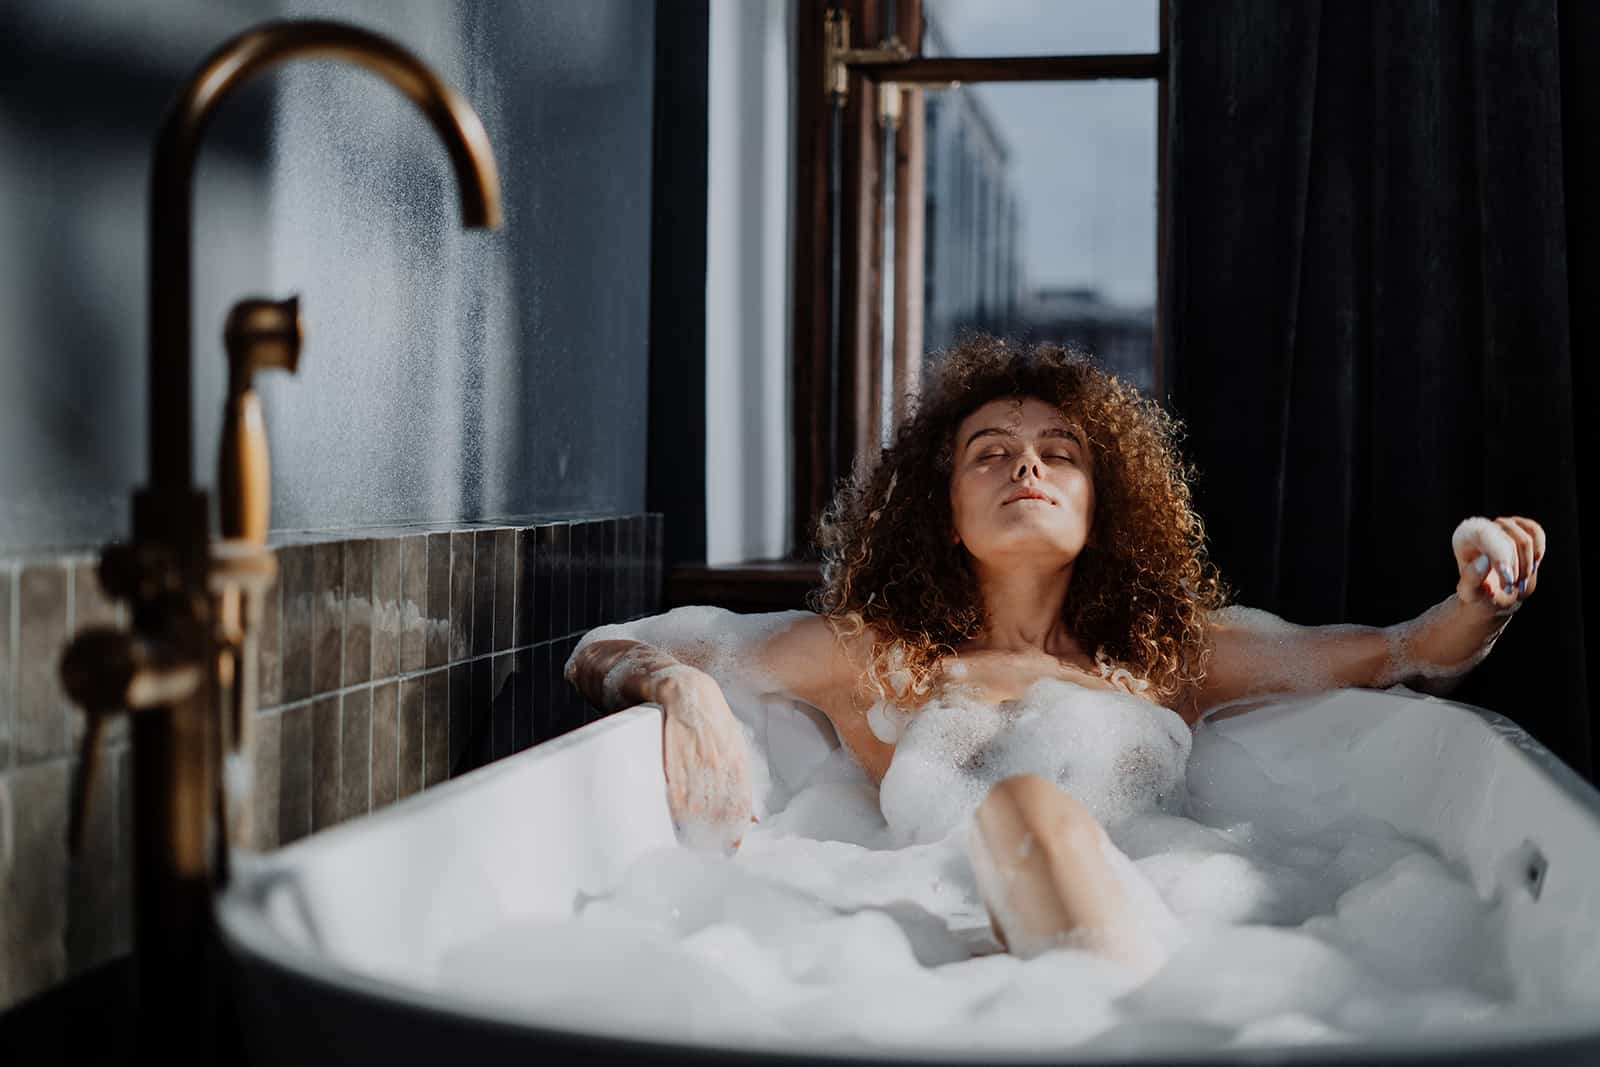 woman relaxing in a bathtub with eyes closed